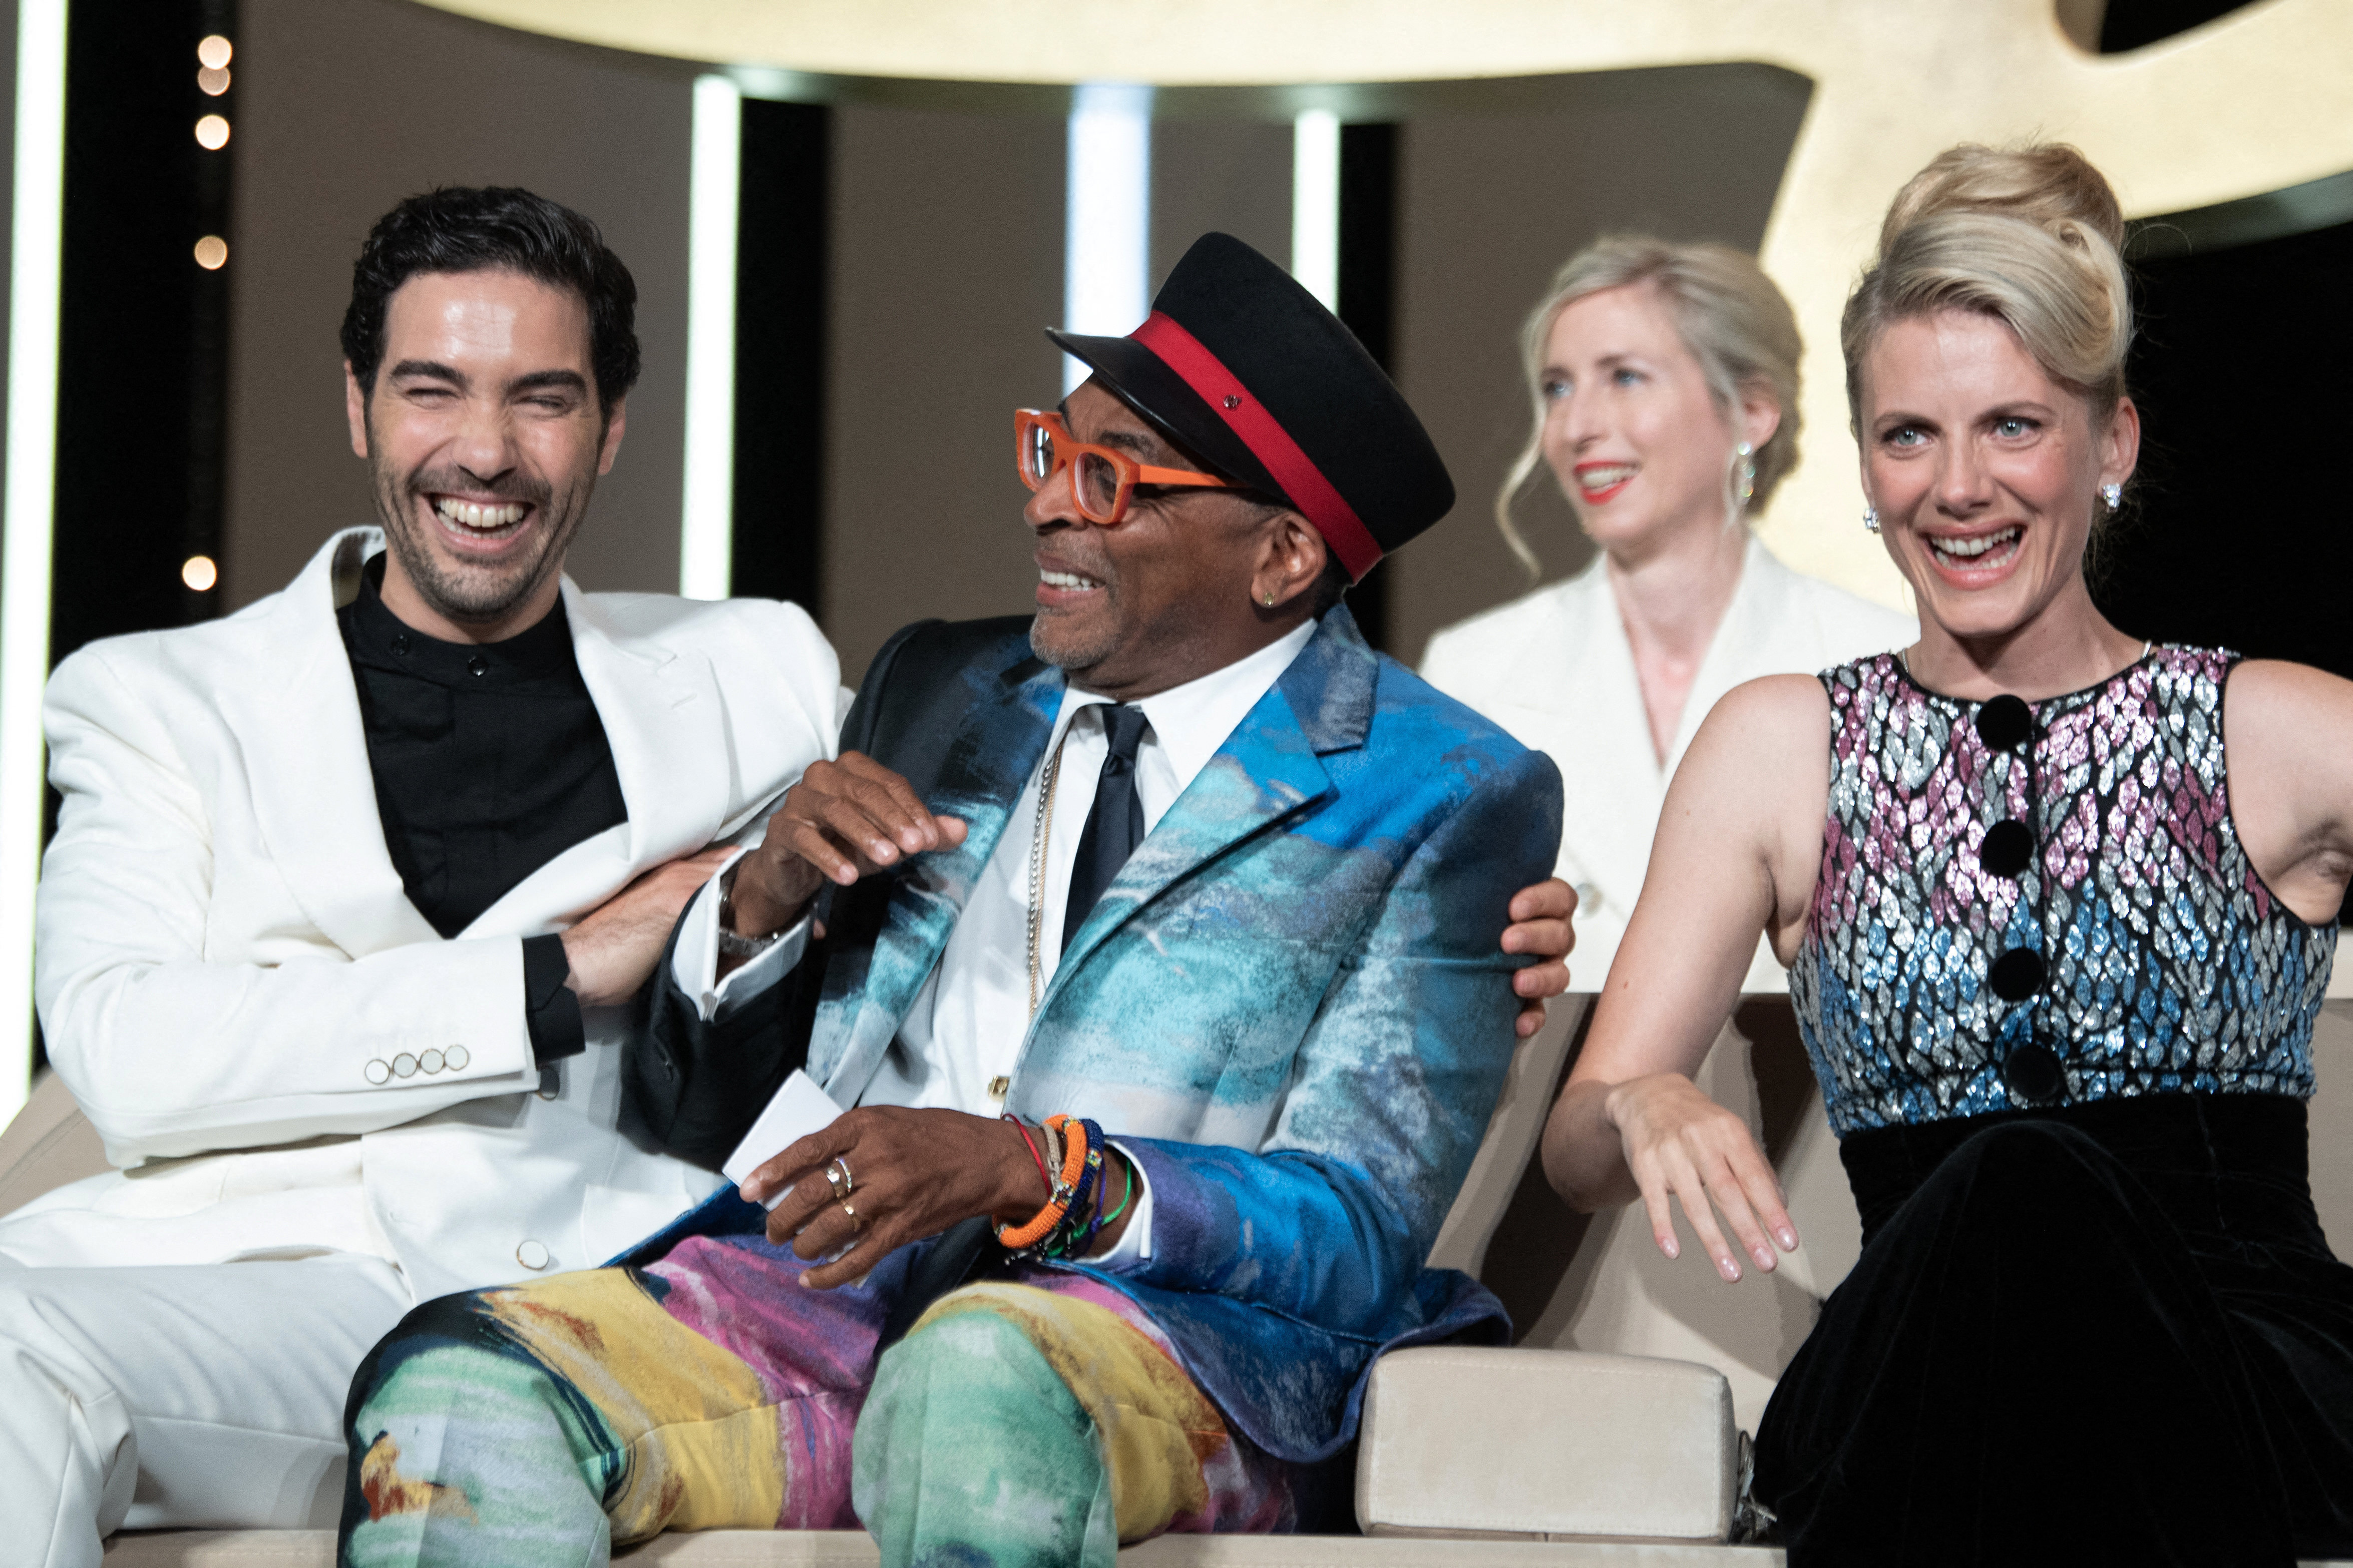 """Jury President Spike Lee and Jury members Tahar Rahim and Melanie Laurent on stage during the closing ceremony of the 74th annual Cannes Film Festival on July 17, 2021 in Cannes, France. Spike Lee accidentally revealed the winner of the festival's top prize, the prestigious Palme d'Or, at the start of the ceremony, after what appeared to be his misunderstanding of a question from the show's host, actress Toria Dillier, who prompted him to reveal the """"first prize."""" Photo by David Niviere/Abaca/Sipa USA(Sipa via AP Images)"""